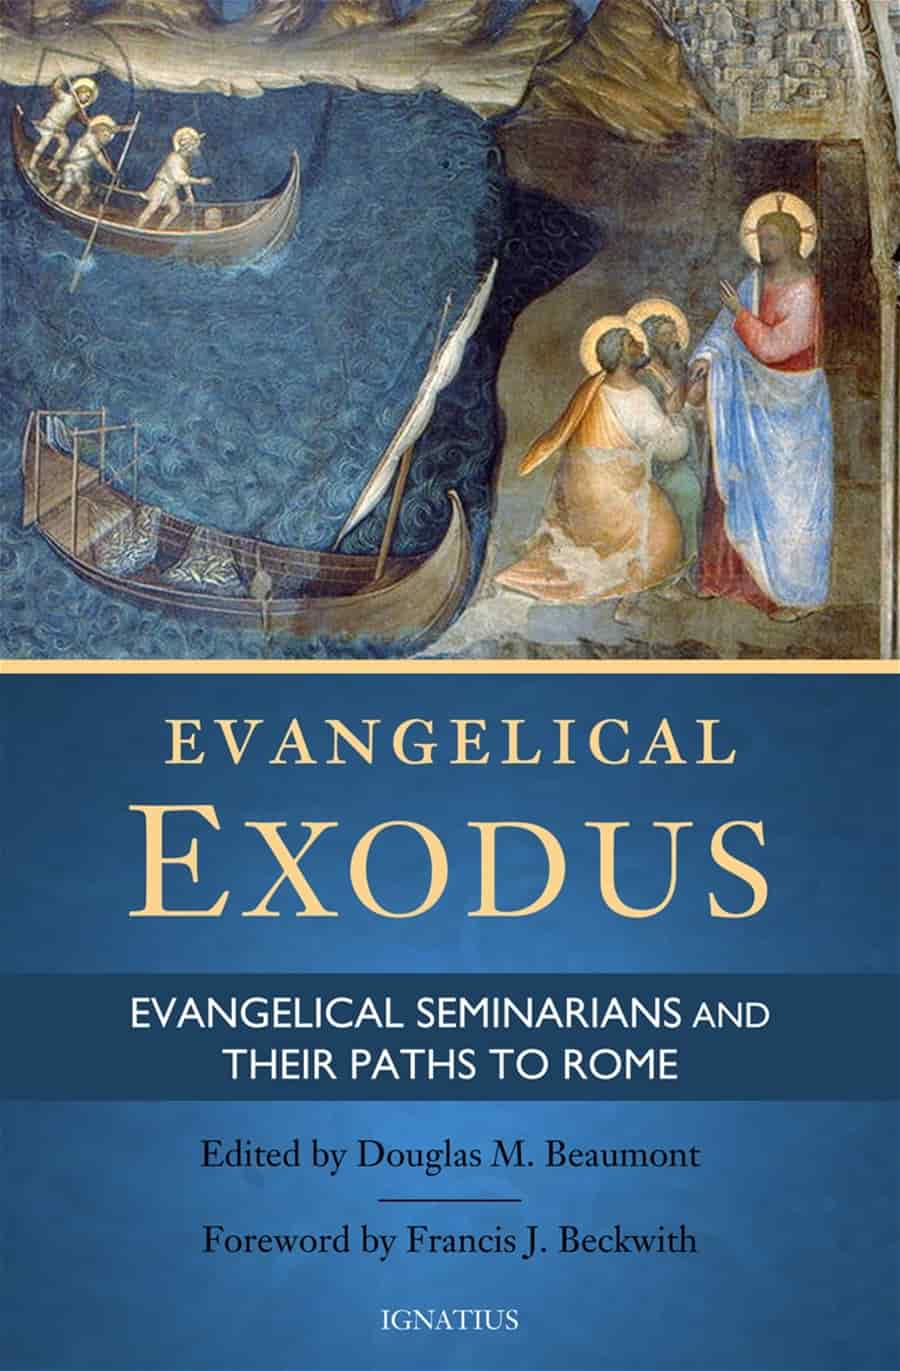 evangelical_exodus_book_1